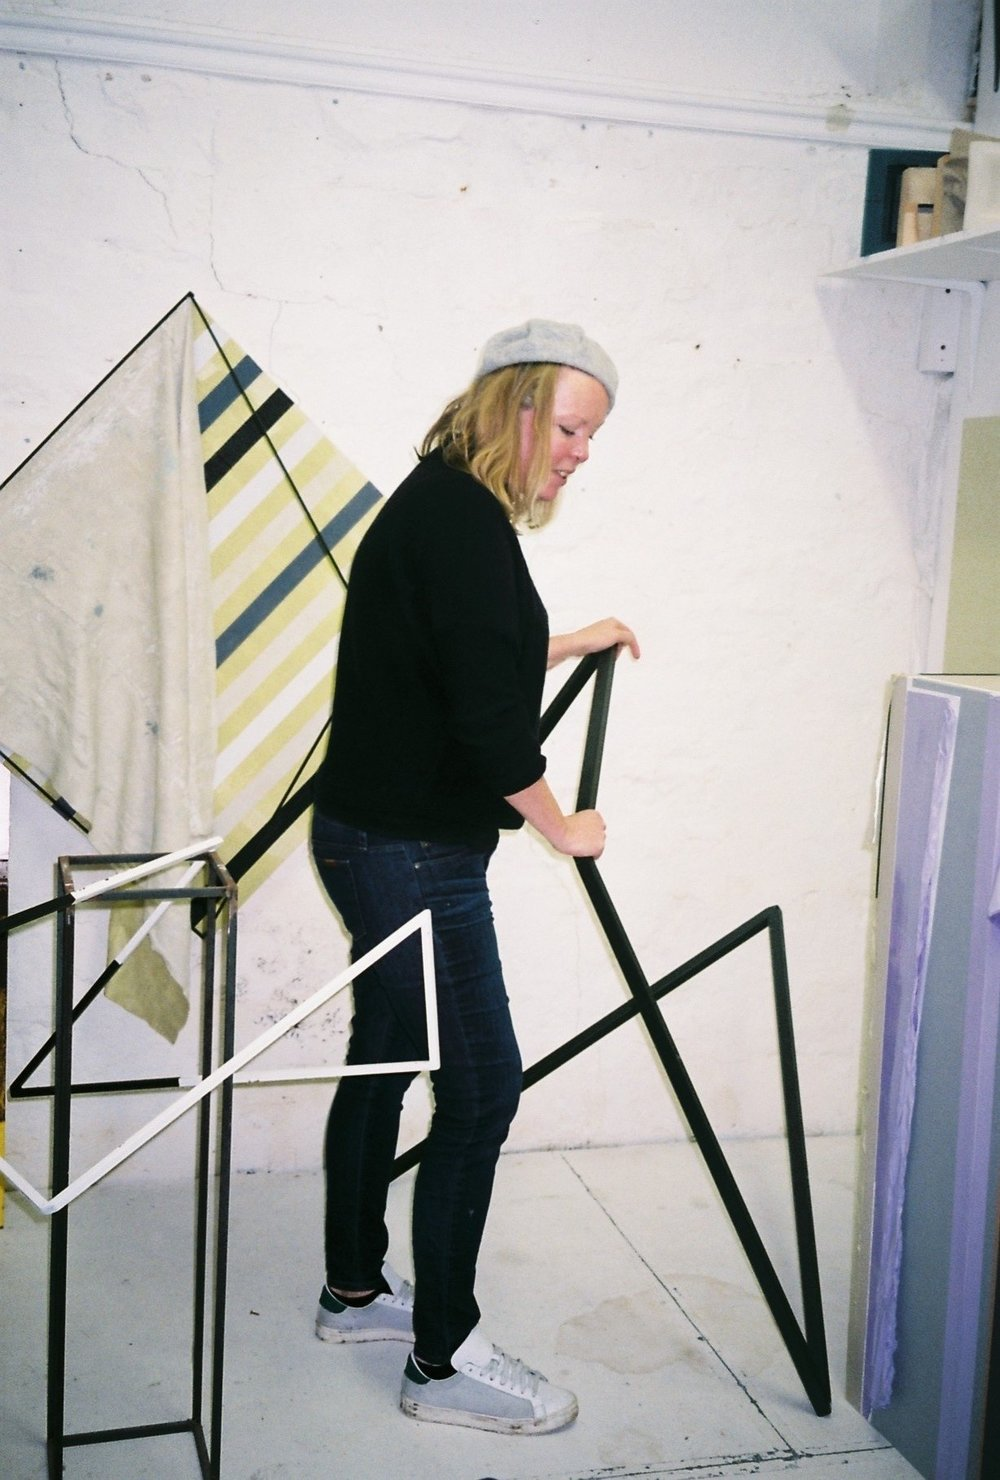 andrea v wright, studio visit by dateagleart. photography by delilah olson, copyright dateagleart